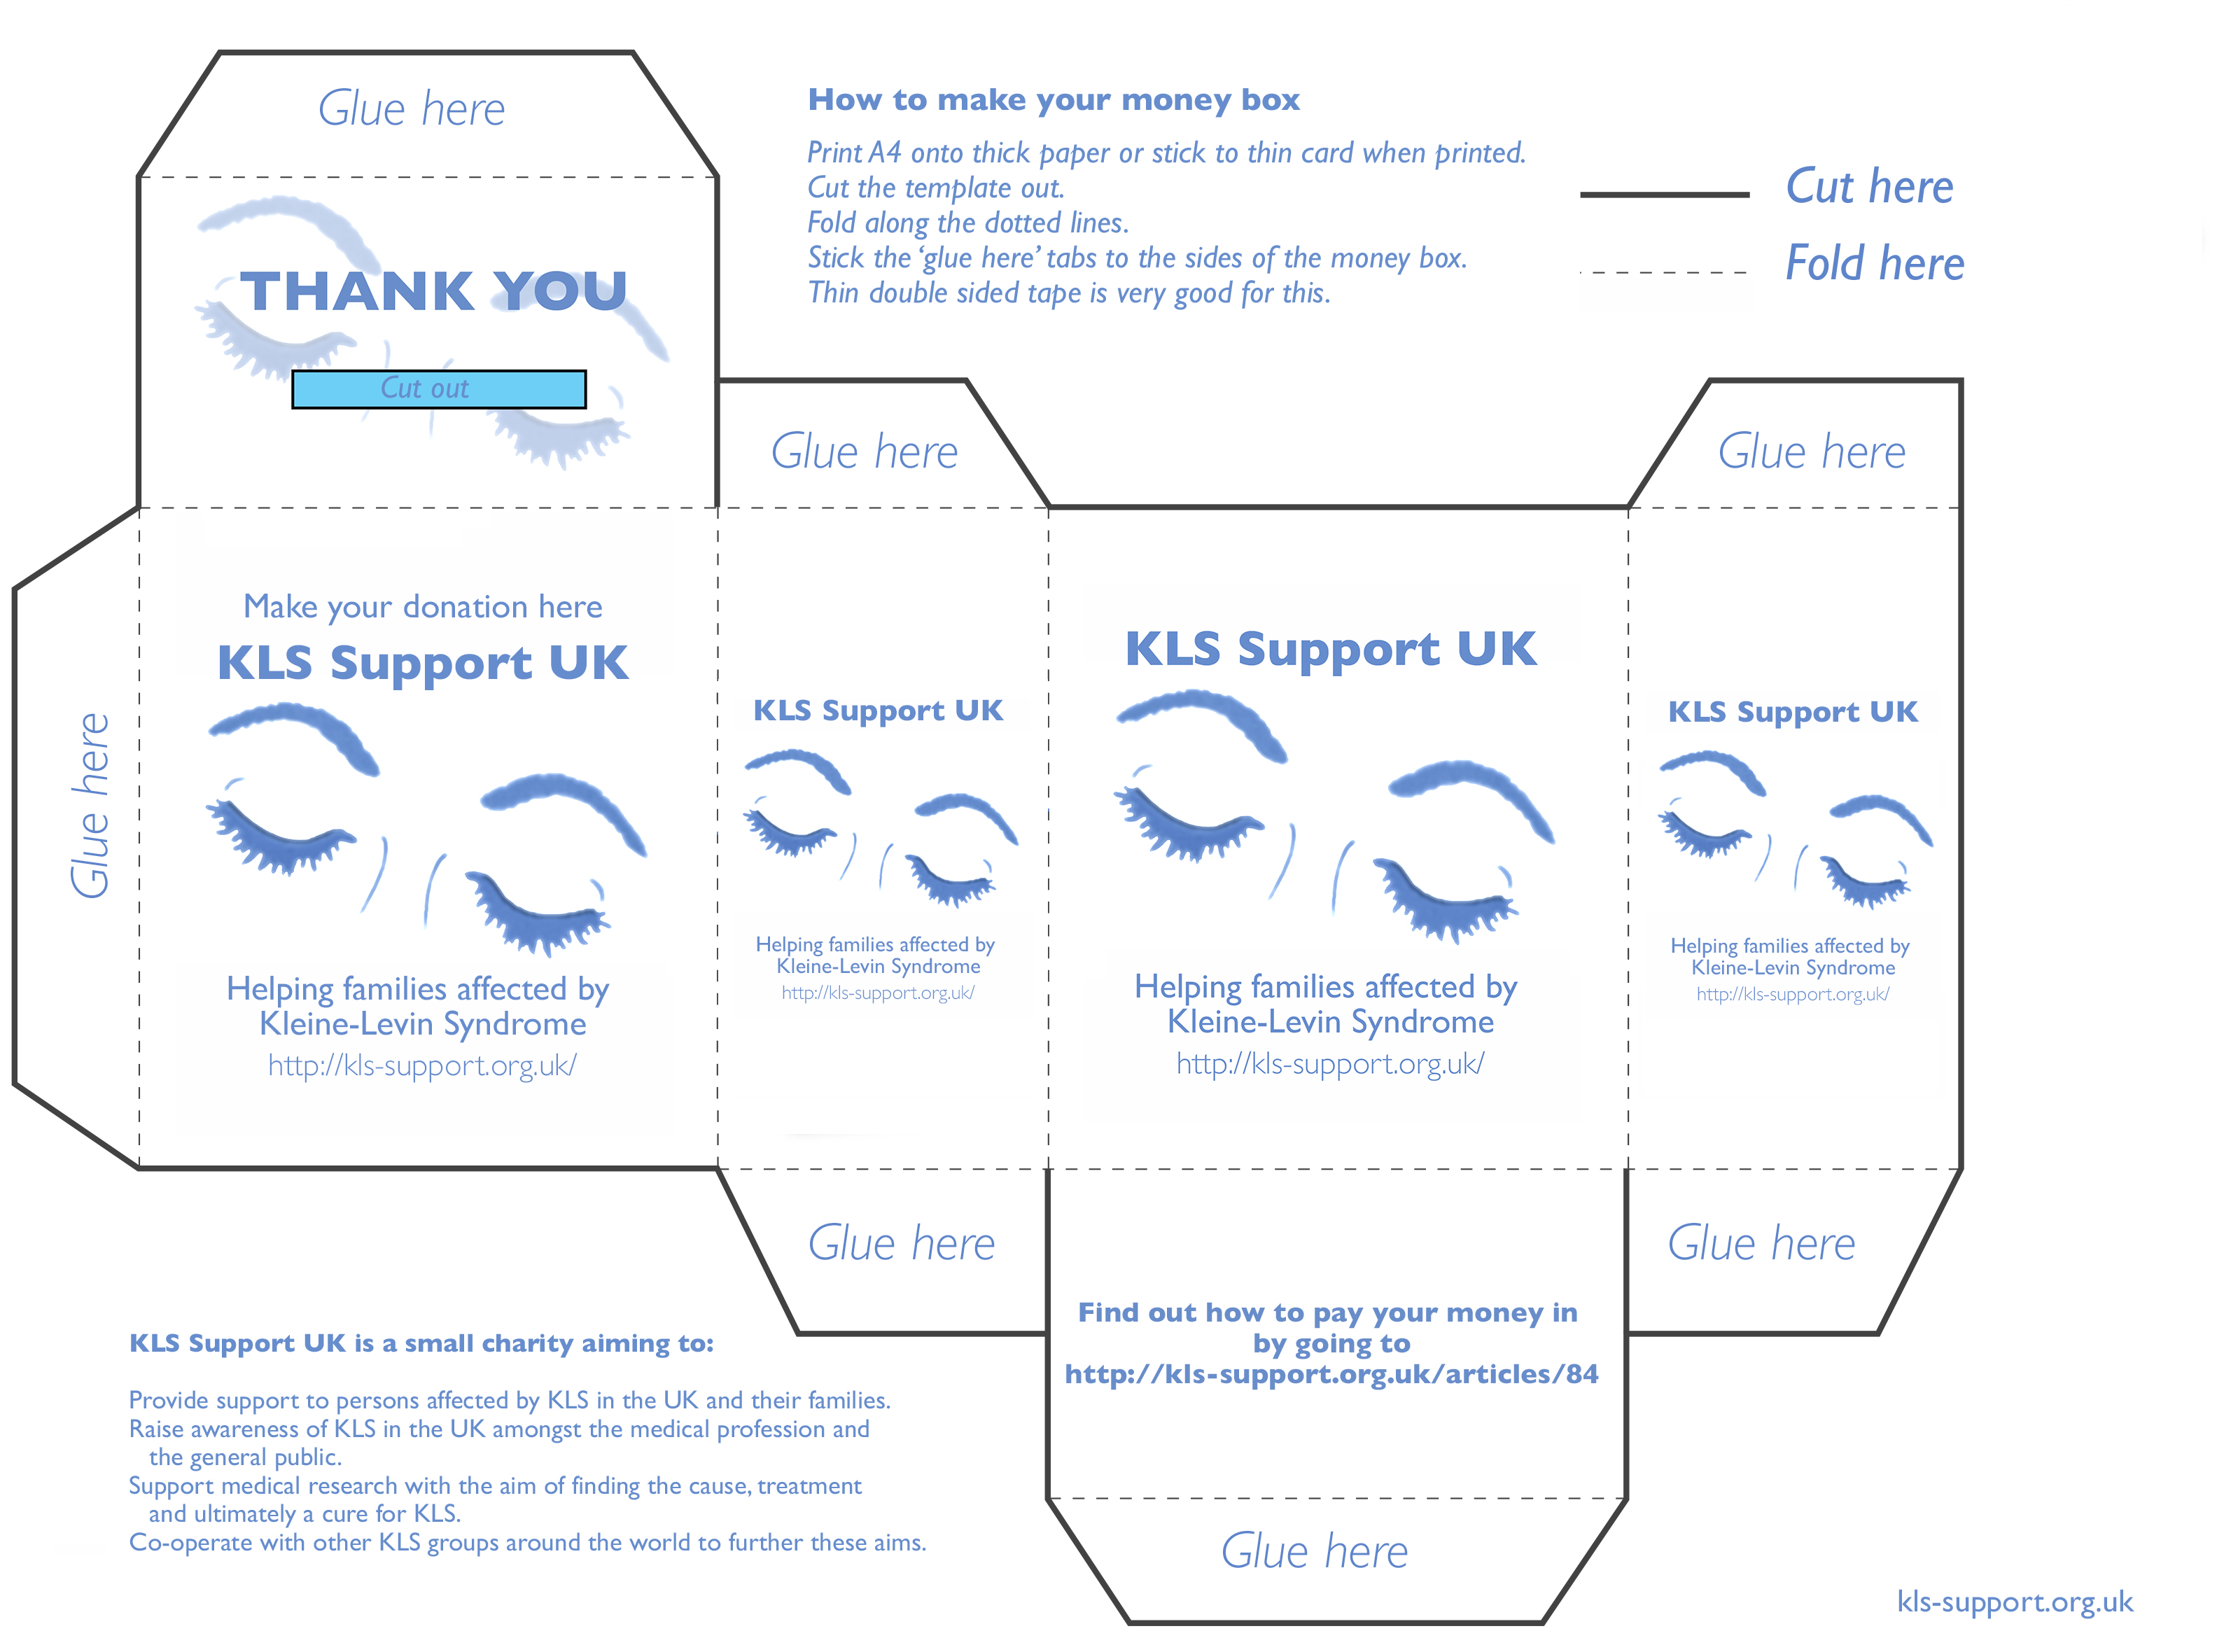 KLS Support UK money box template image